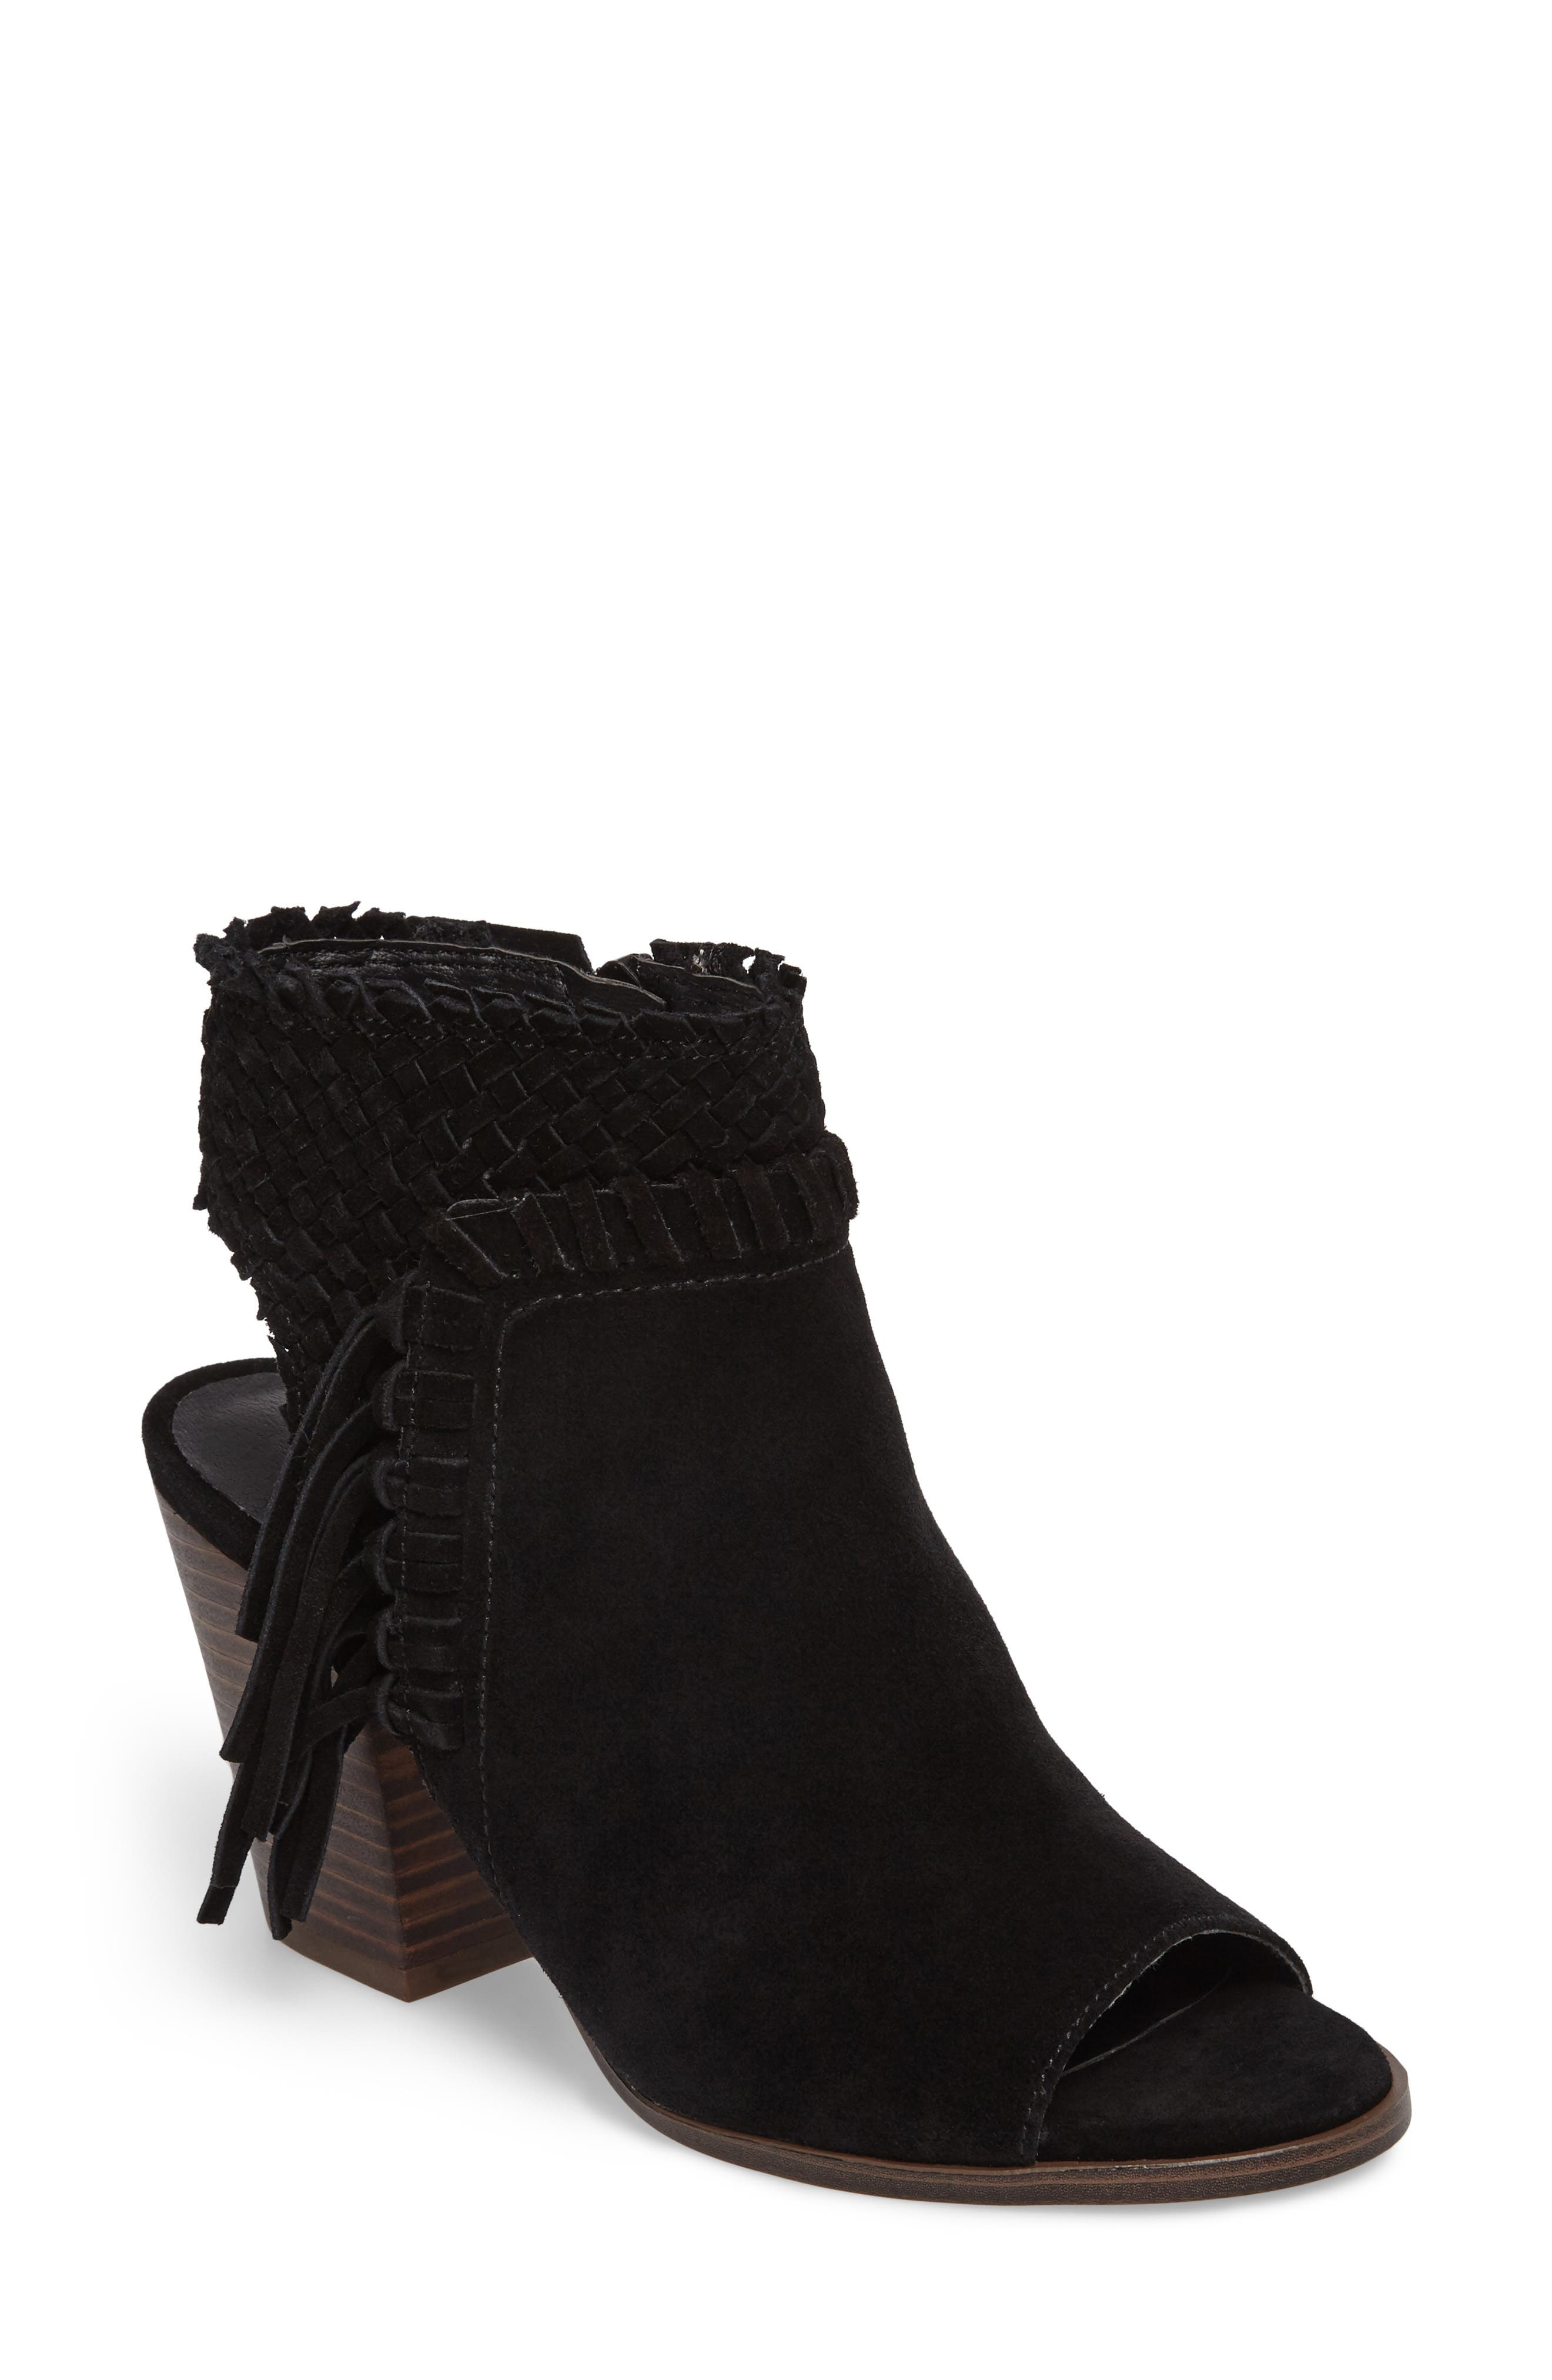 Ointlee Fringe Bootie Sandal,                             Main thumbnail 1, color,                             001